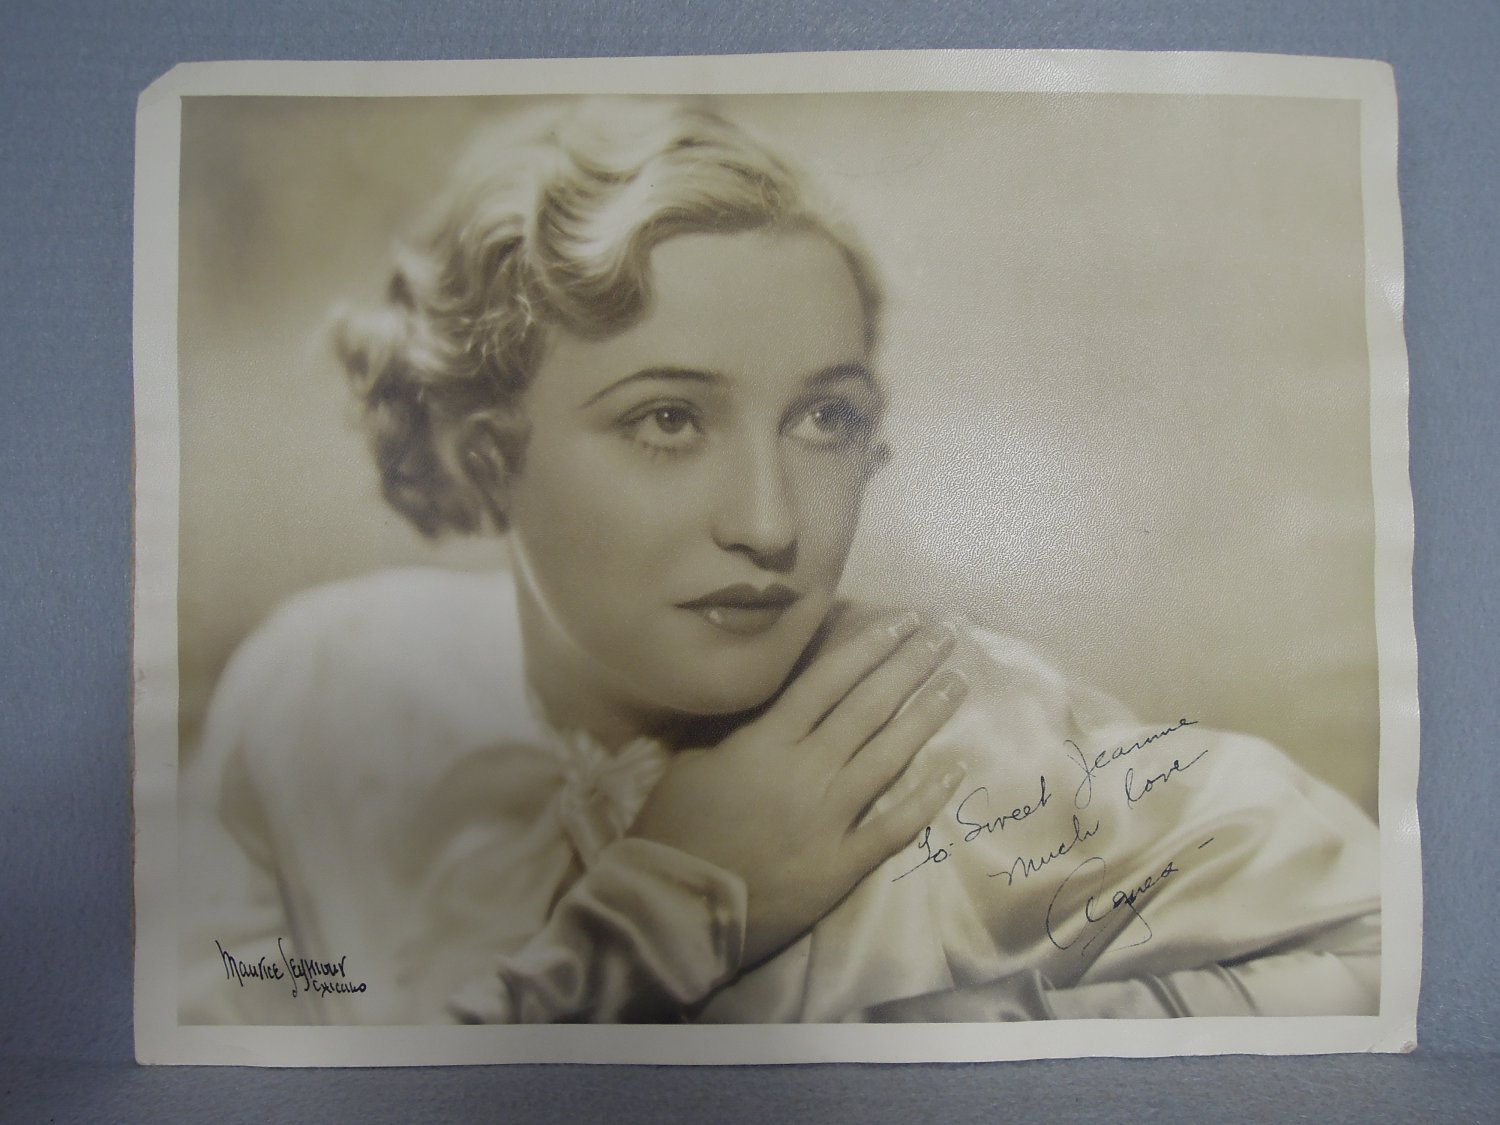 Maurice Seymour Photo Agnes Ayres Signed by both Collectible Large